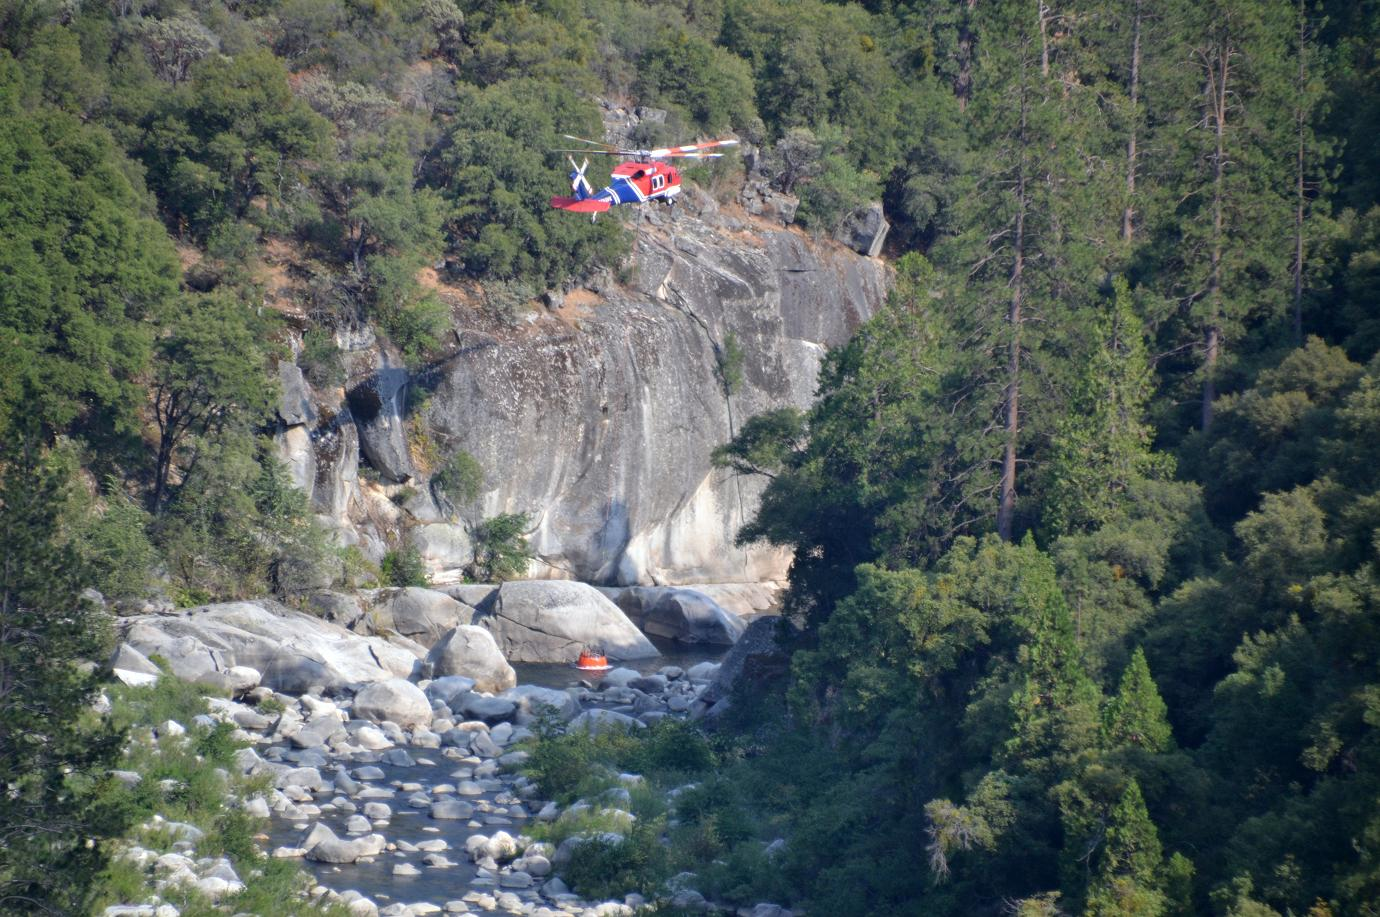 Helicopter gets water from San Joaquin at Rock Creek - photo by Gina Clugston